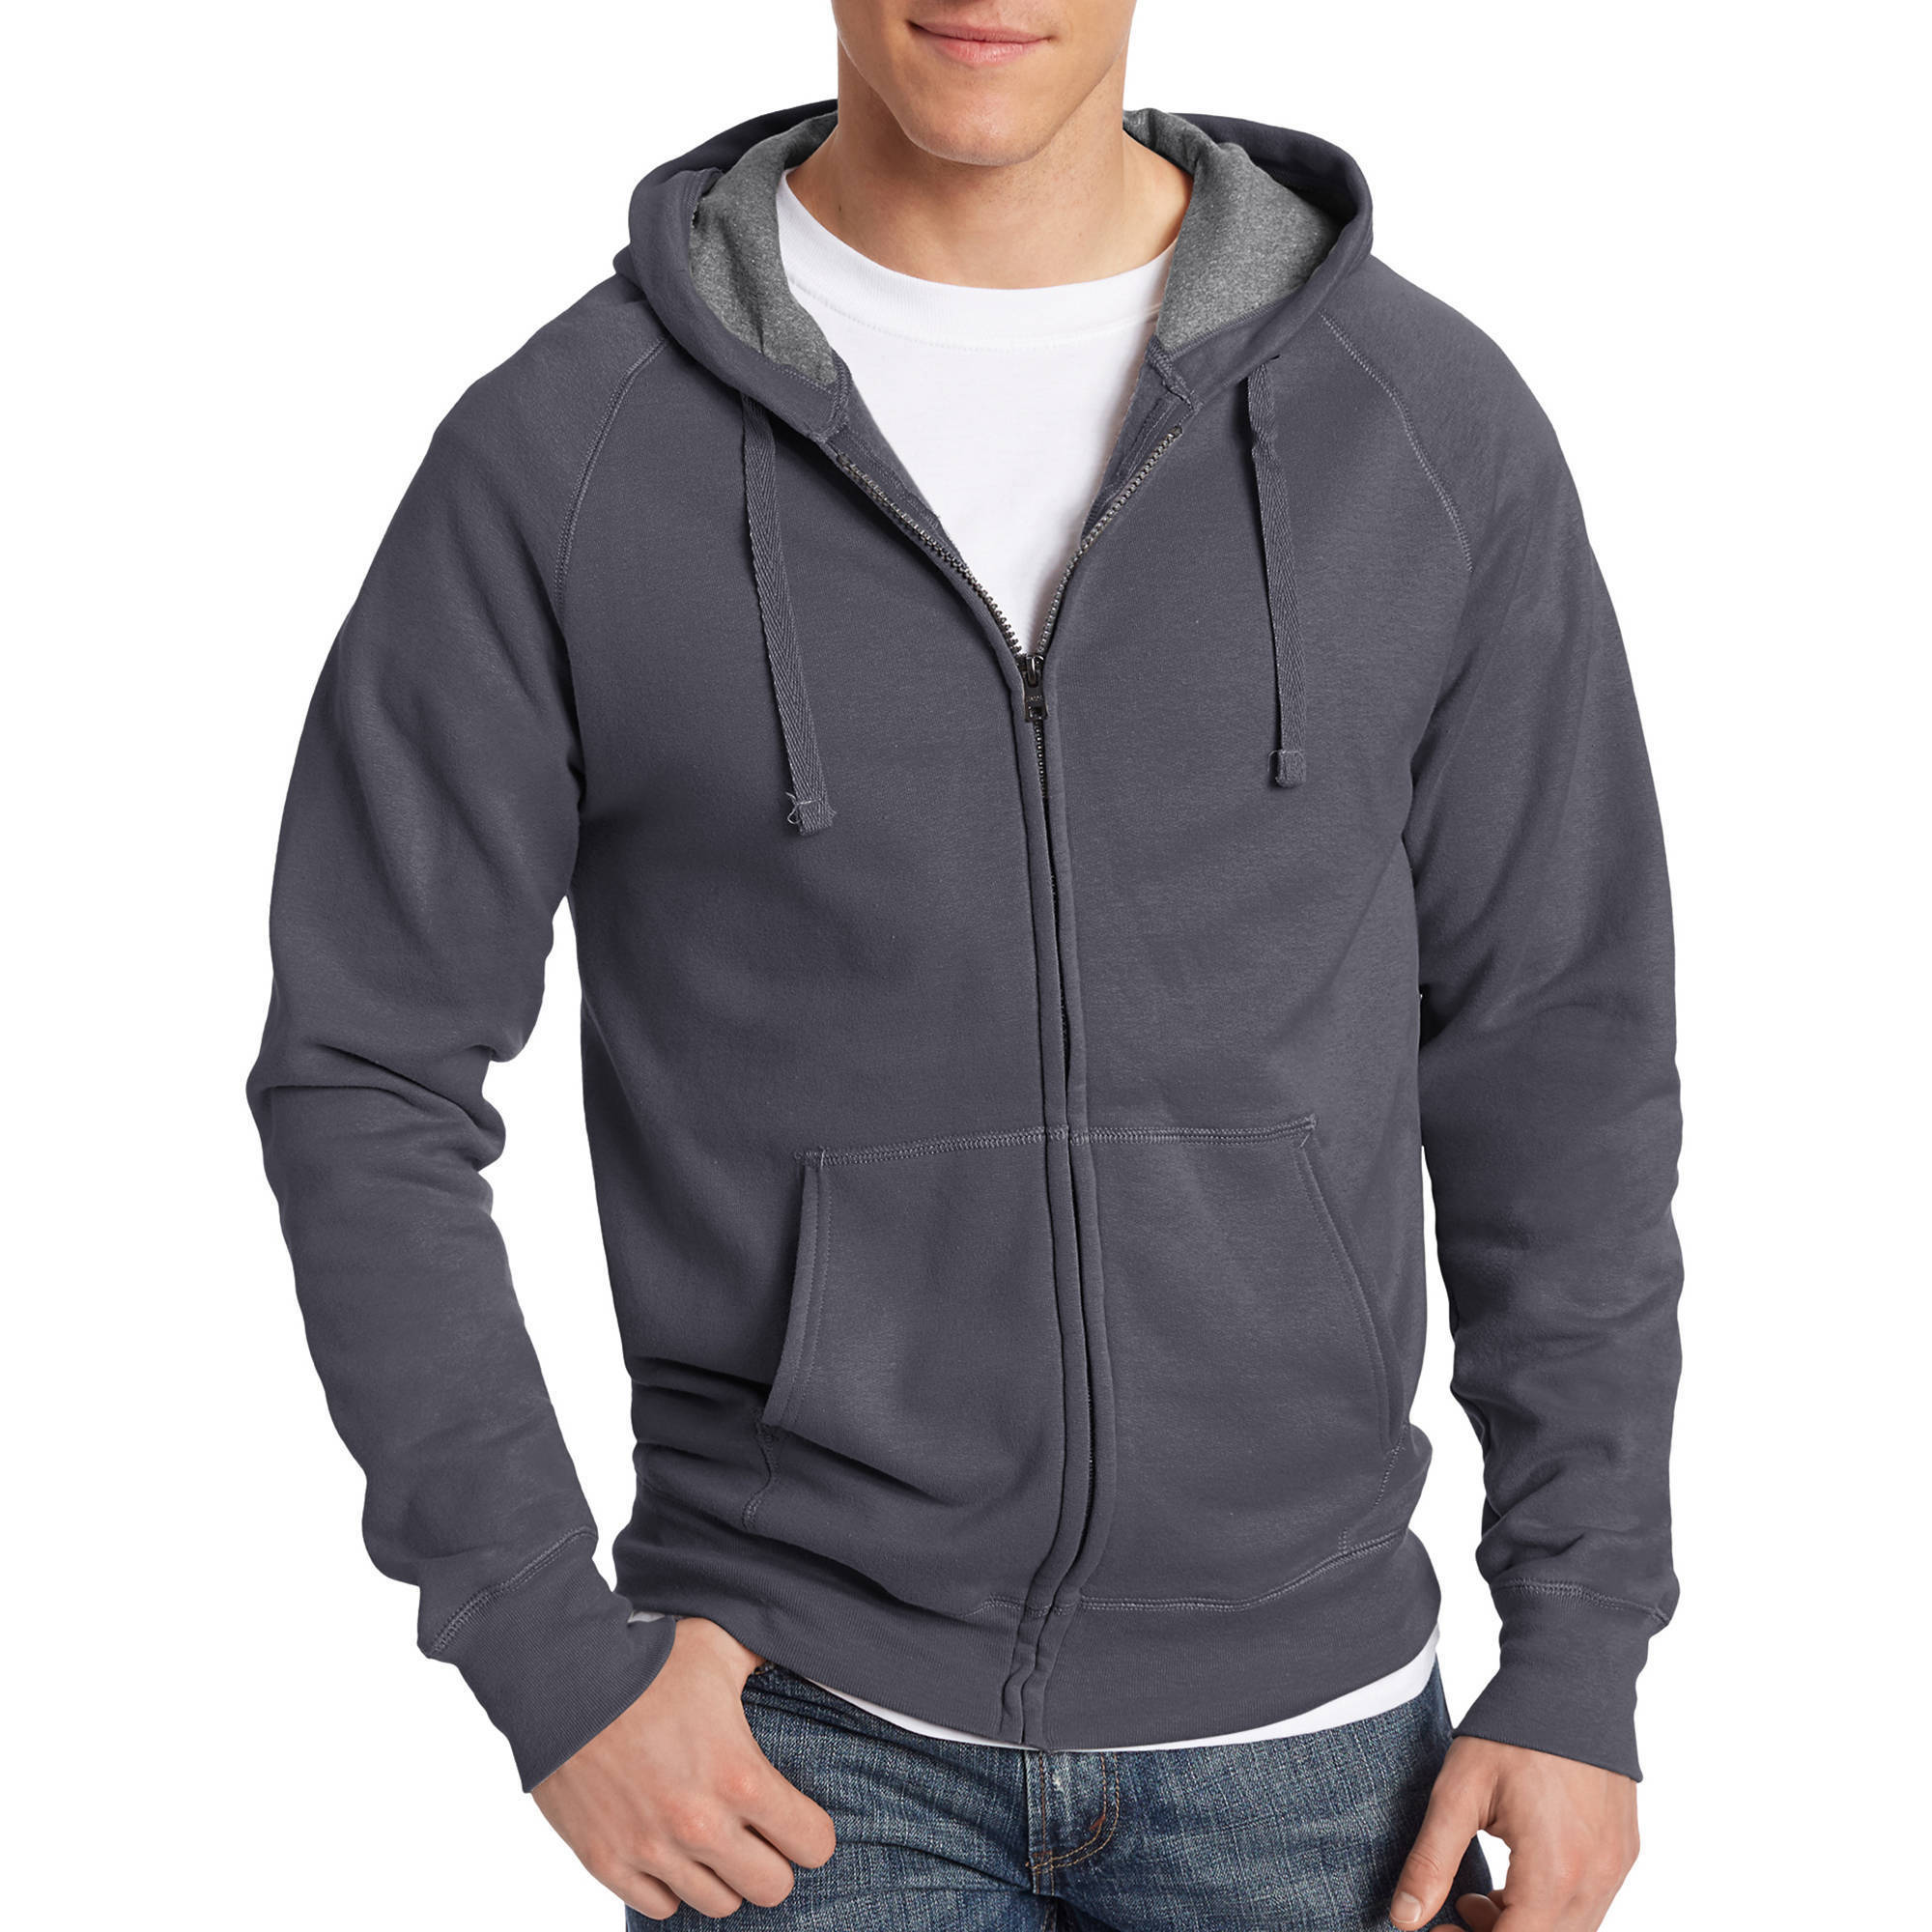 Men's Big Nano Premium Soft Lightweight Fleece Full Zip Hoodie